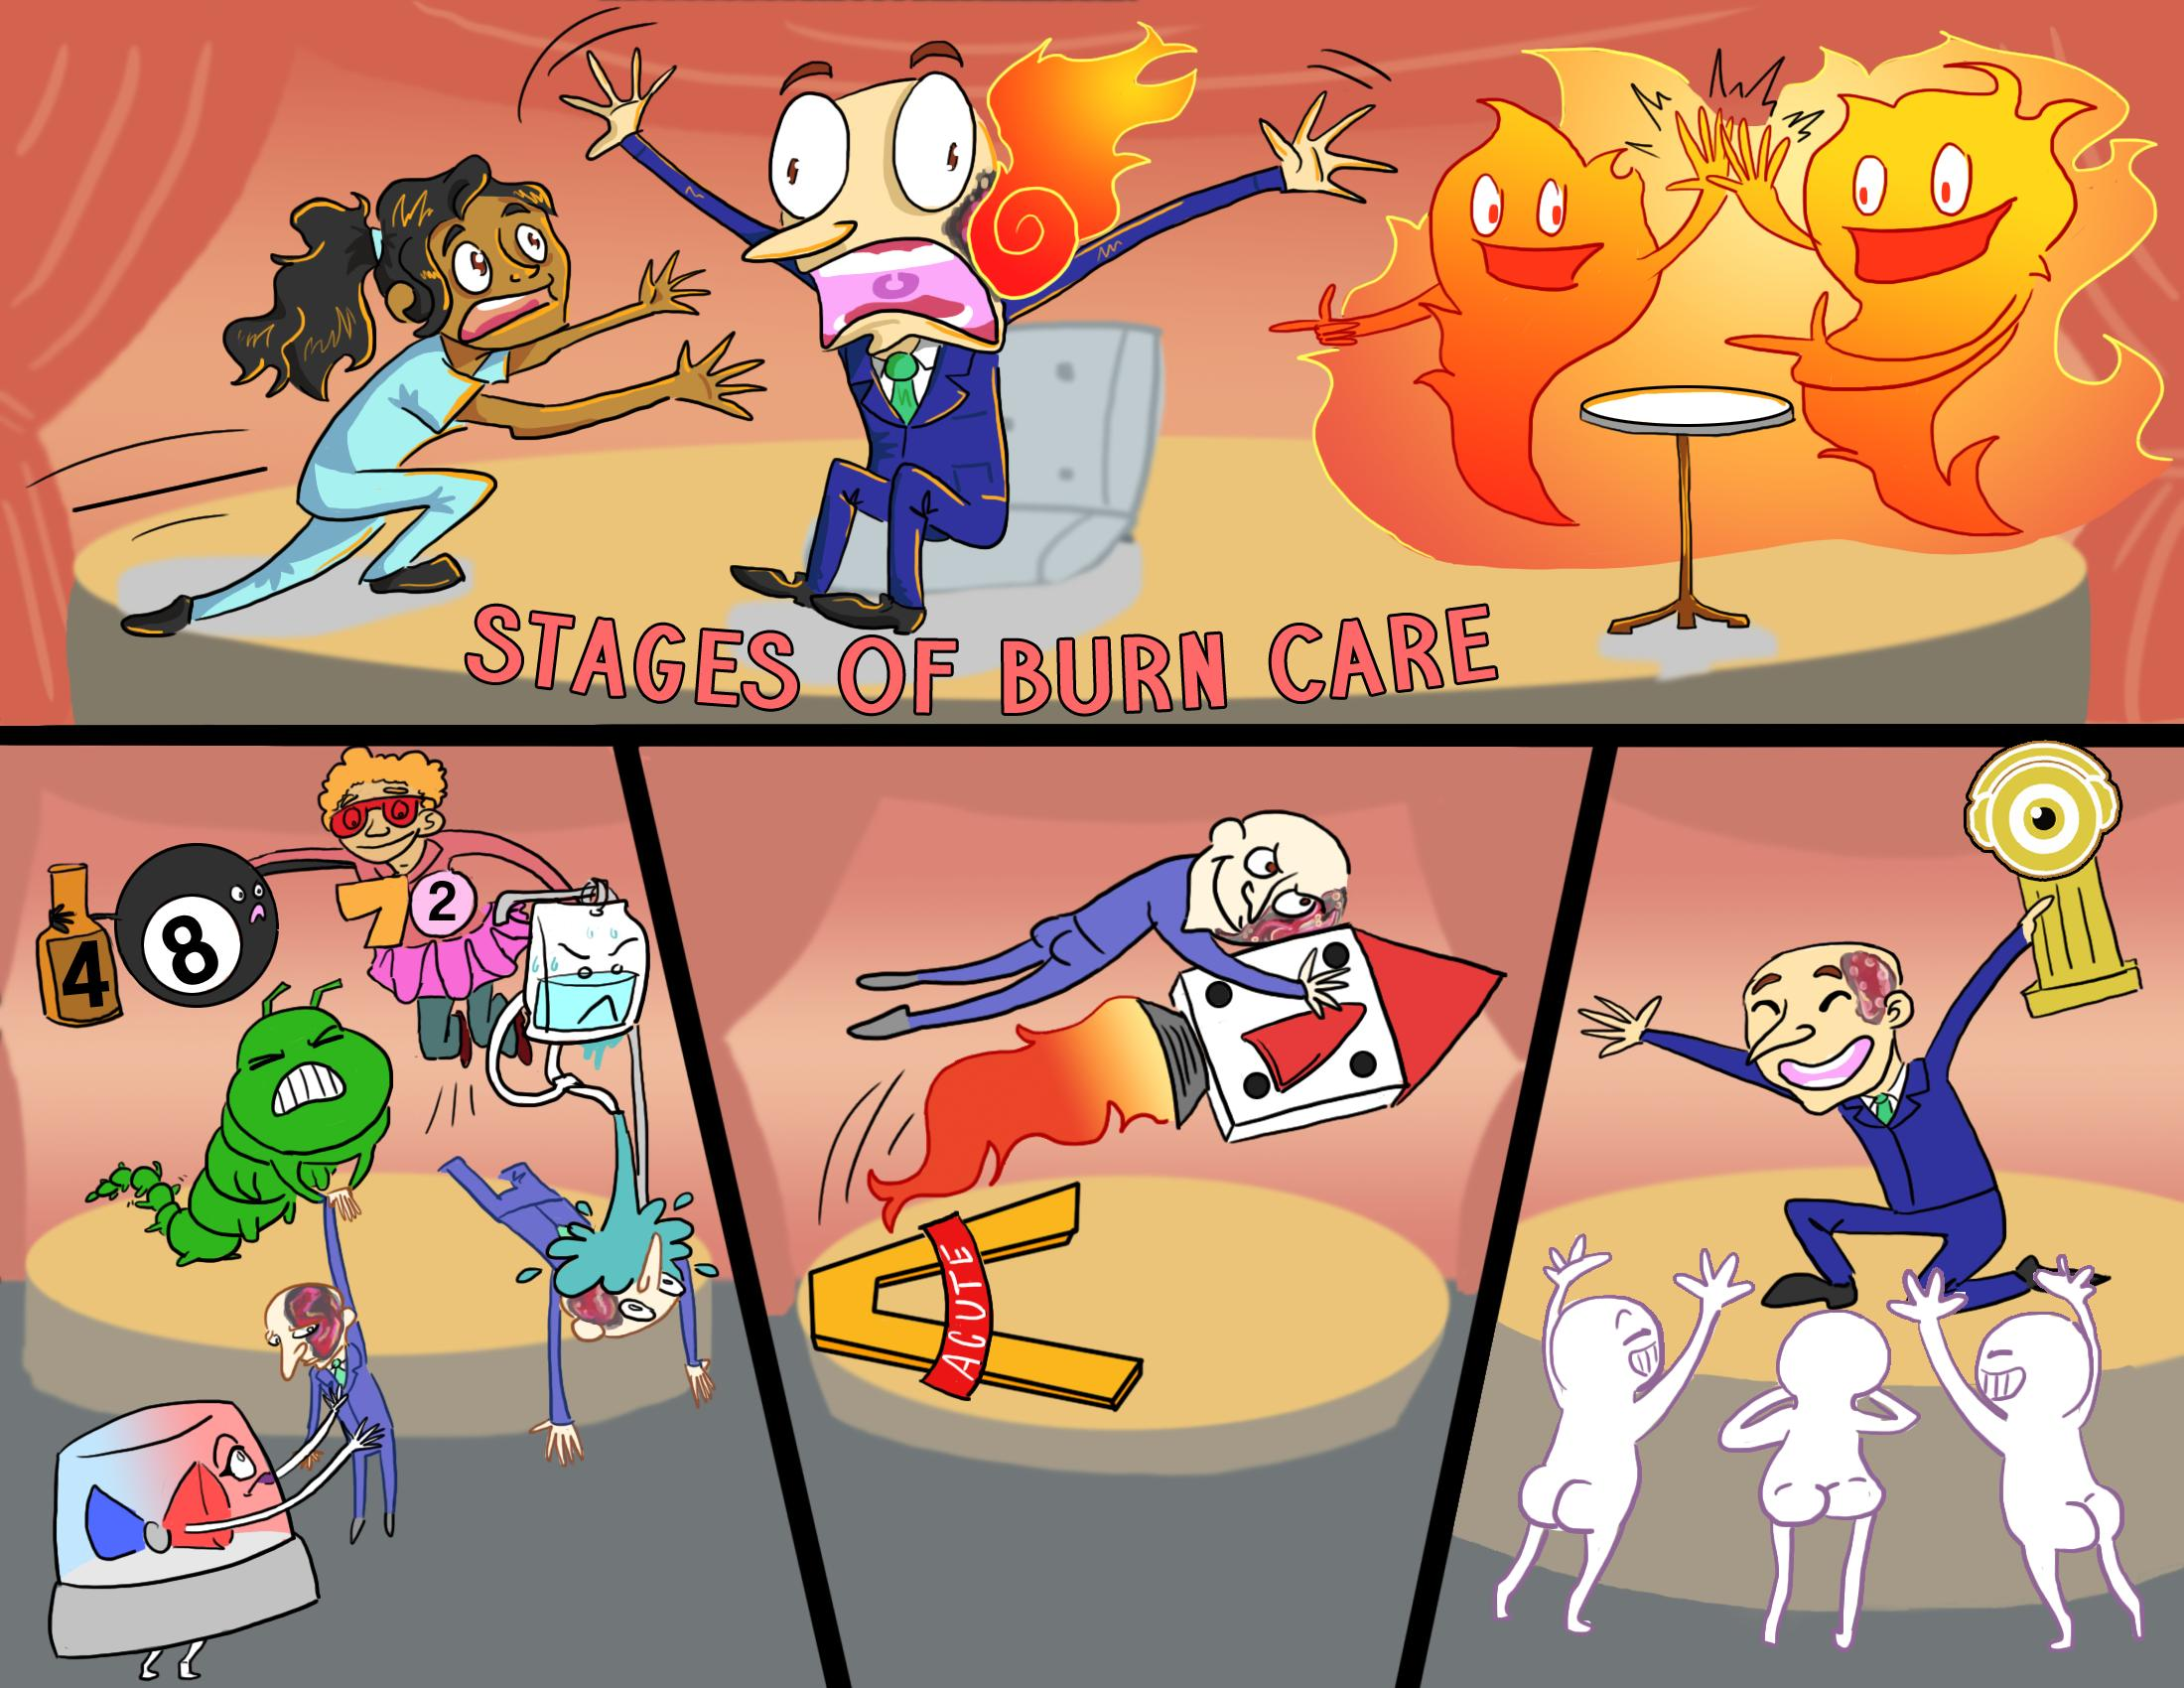 Stages of Burn Care